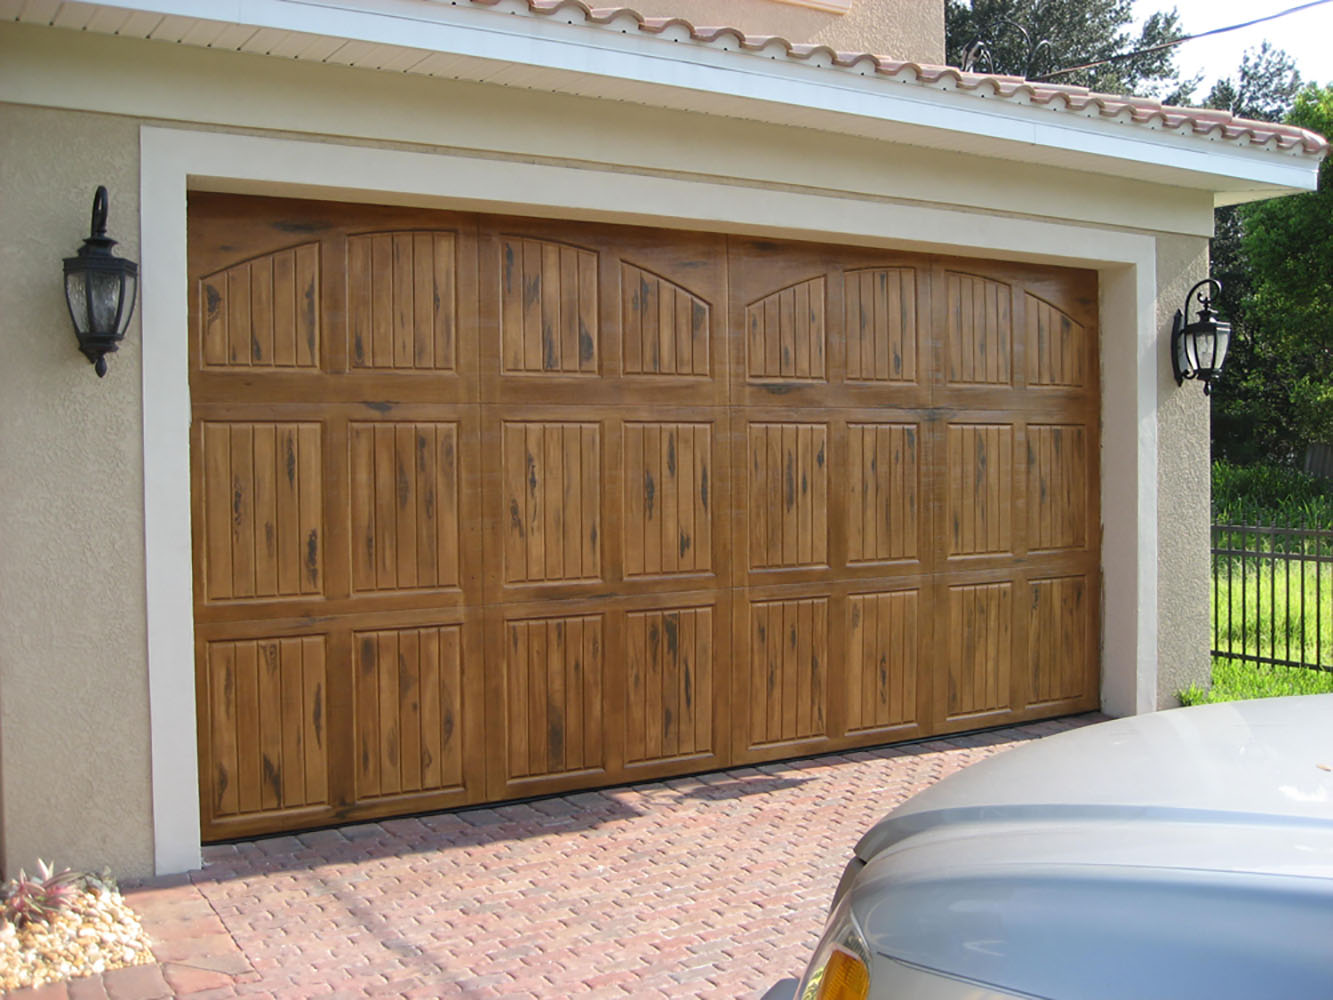 1000 #6E4B2C Garage Doors Windows Doors Columns And More. picture/photo Overhead Doors Tampa 35791333